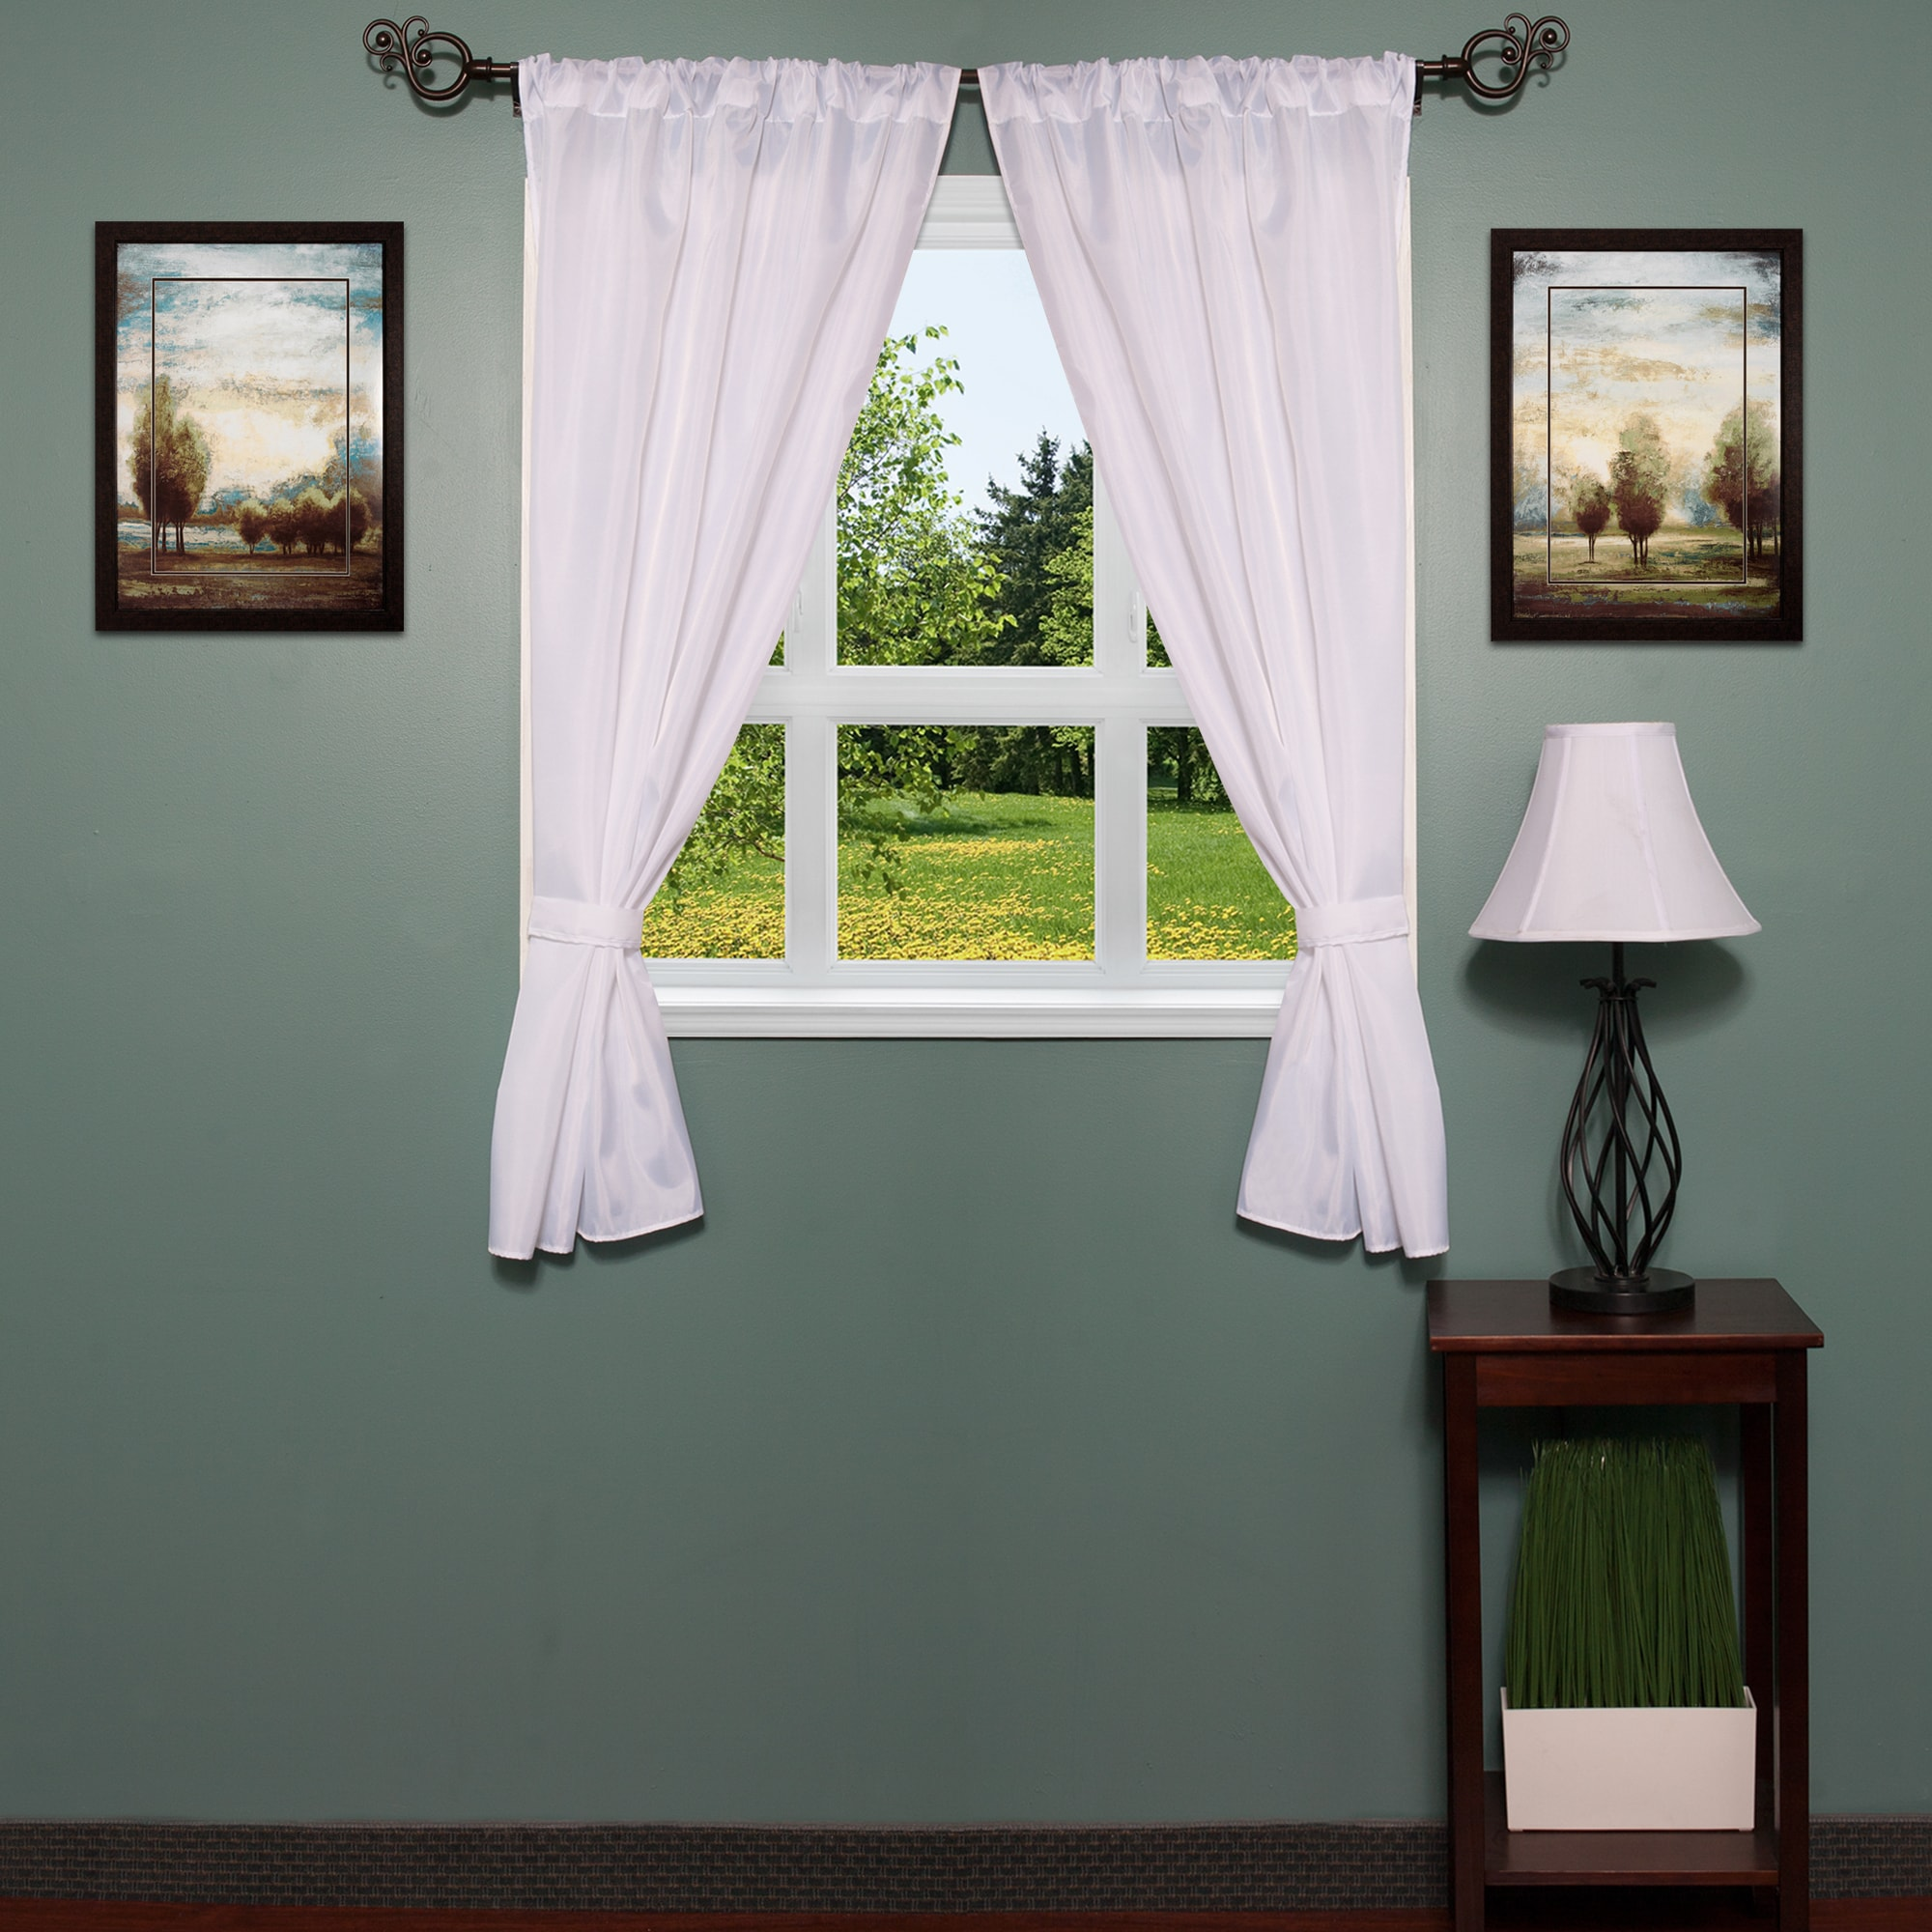 Classic Hotel Quality Solid White Water Resistant Fabric Bathroom Window Curtain Set With Tiebacks 36 X 54 Overstock 11007115